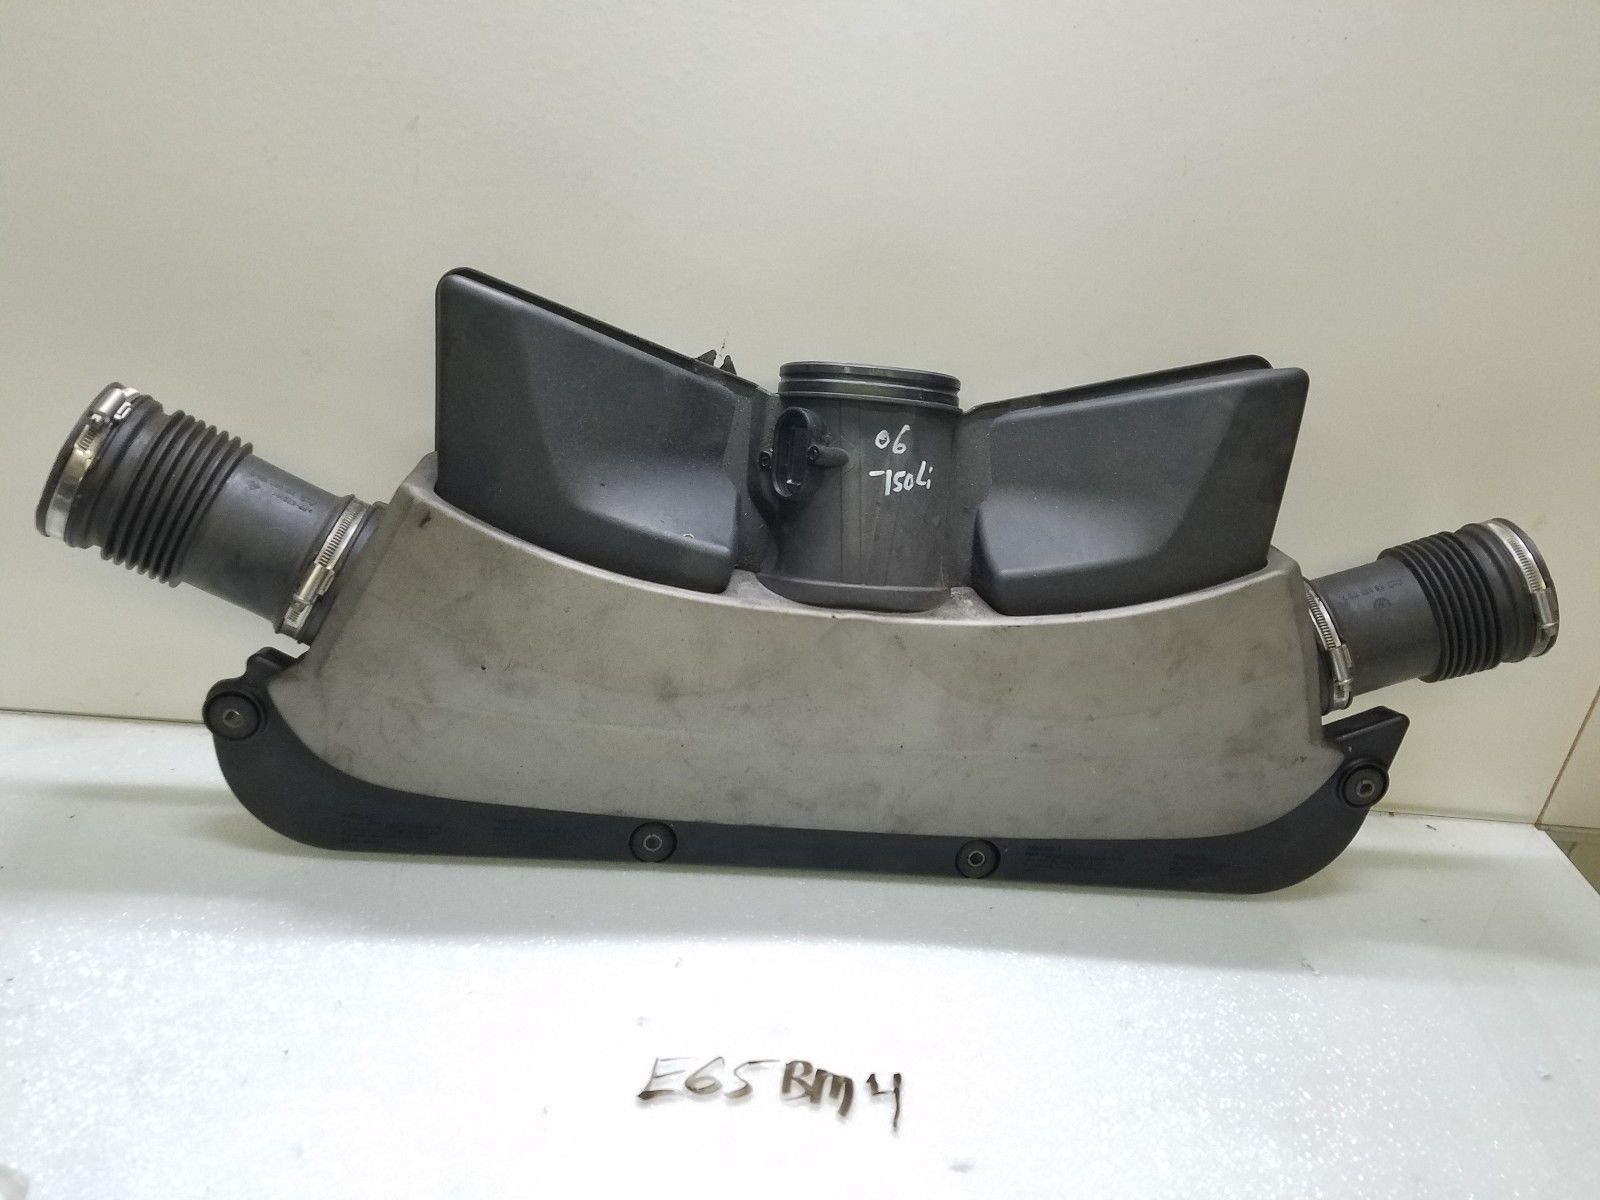 2006-2008 BMW 750Li 750i engine AIR INTAKE manifold box 7541065 Does not apply